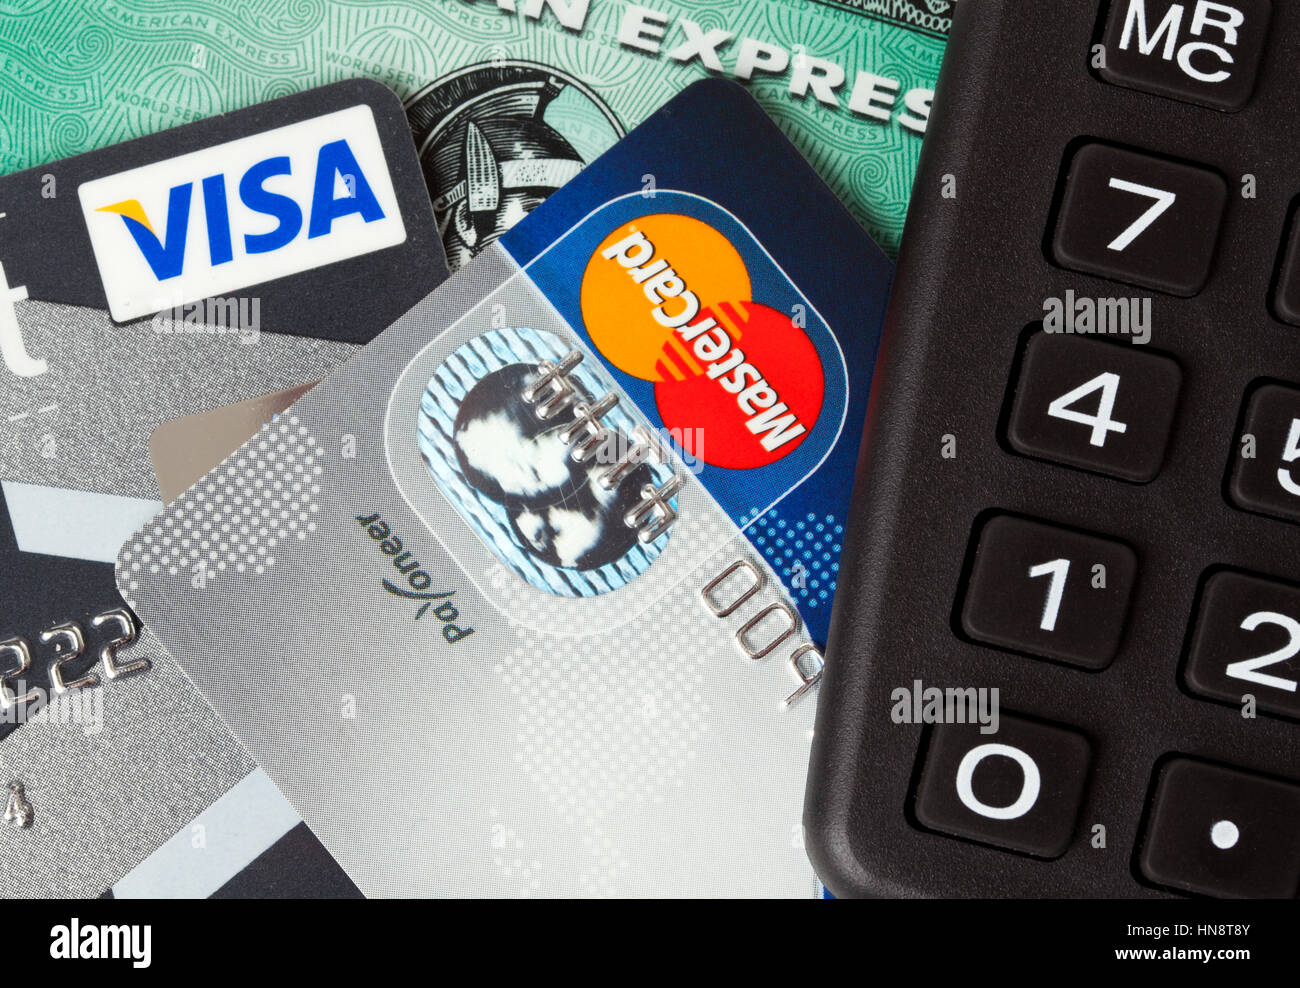 Some may not see improved scores or approval odds. Closeup Of Credit And Debit Cards Issued By Three Major Brands Visa American Express And Mastercard With A Pocket Calculator Stock Photo Alamy